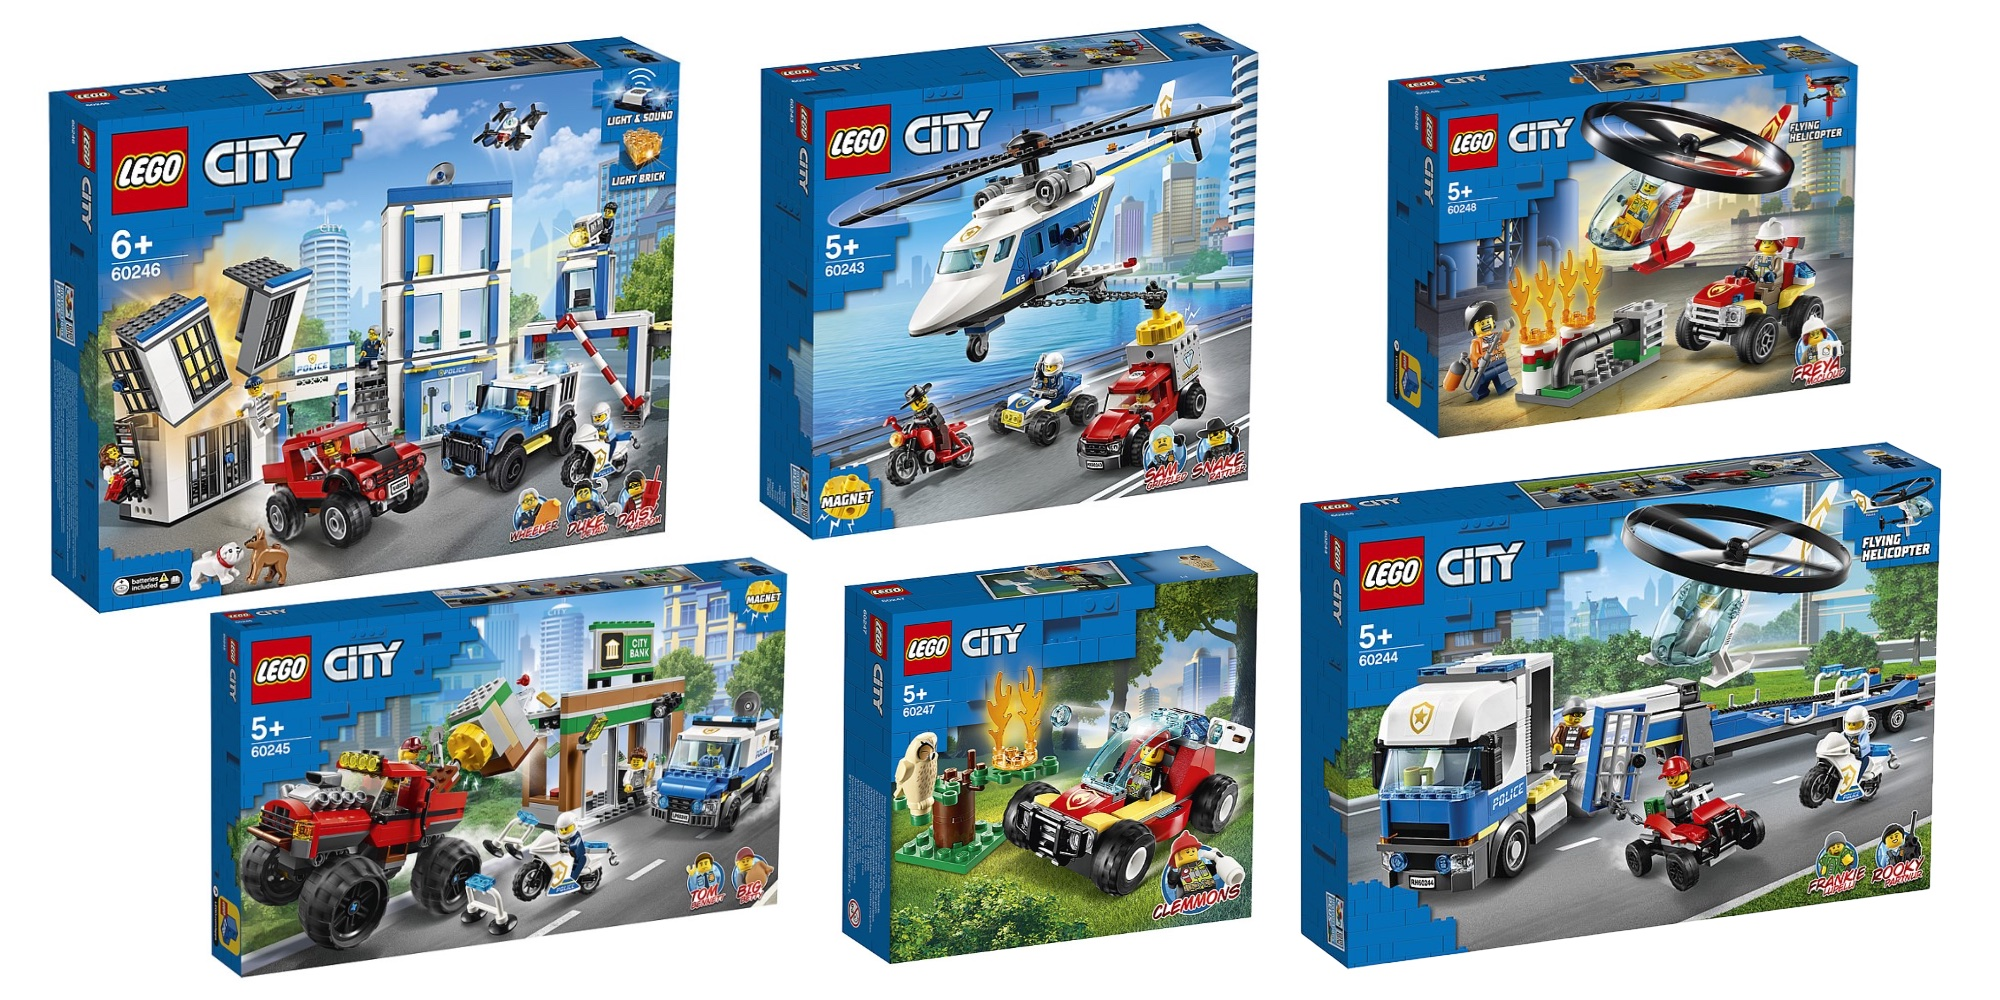 New Lego Sets 2020.Lego Star Wars 2020 Sets Announced Alongside City And More